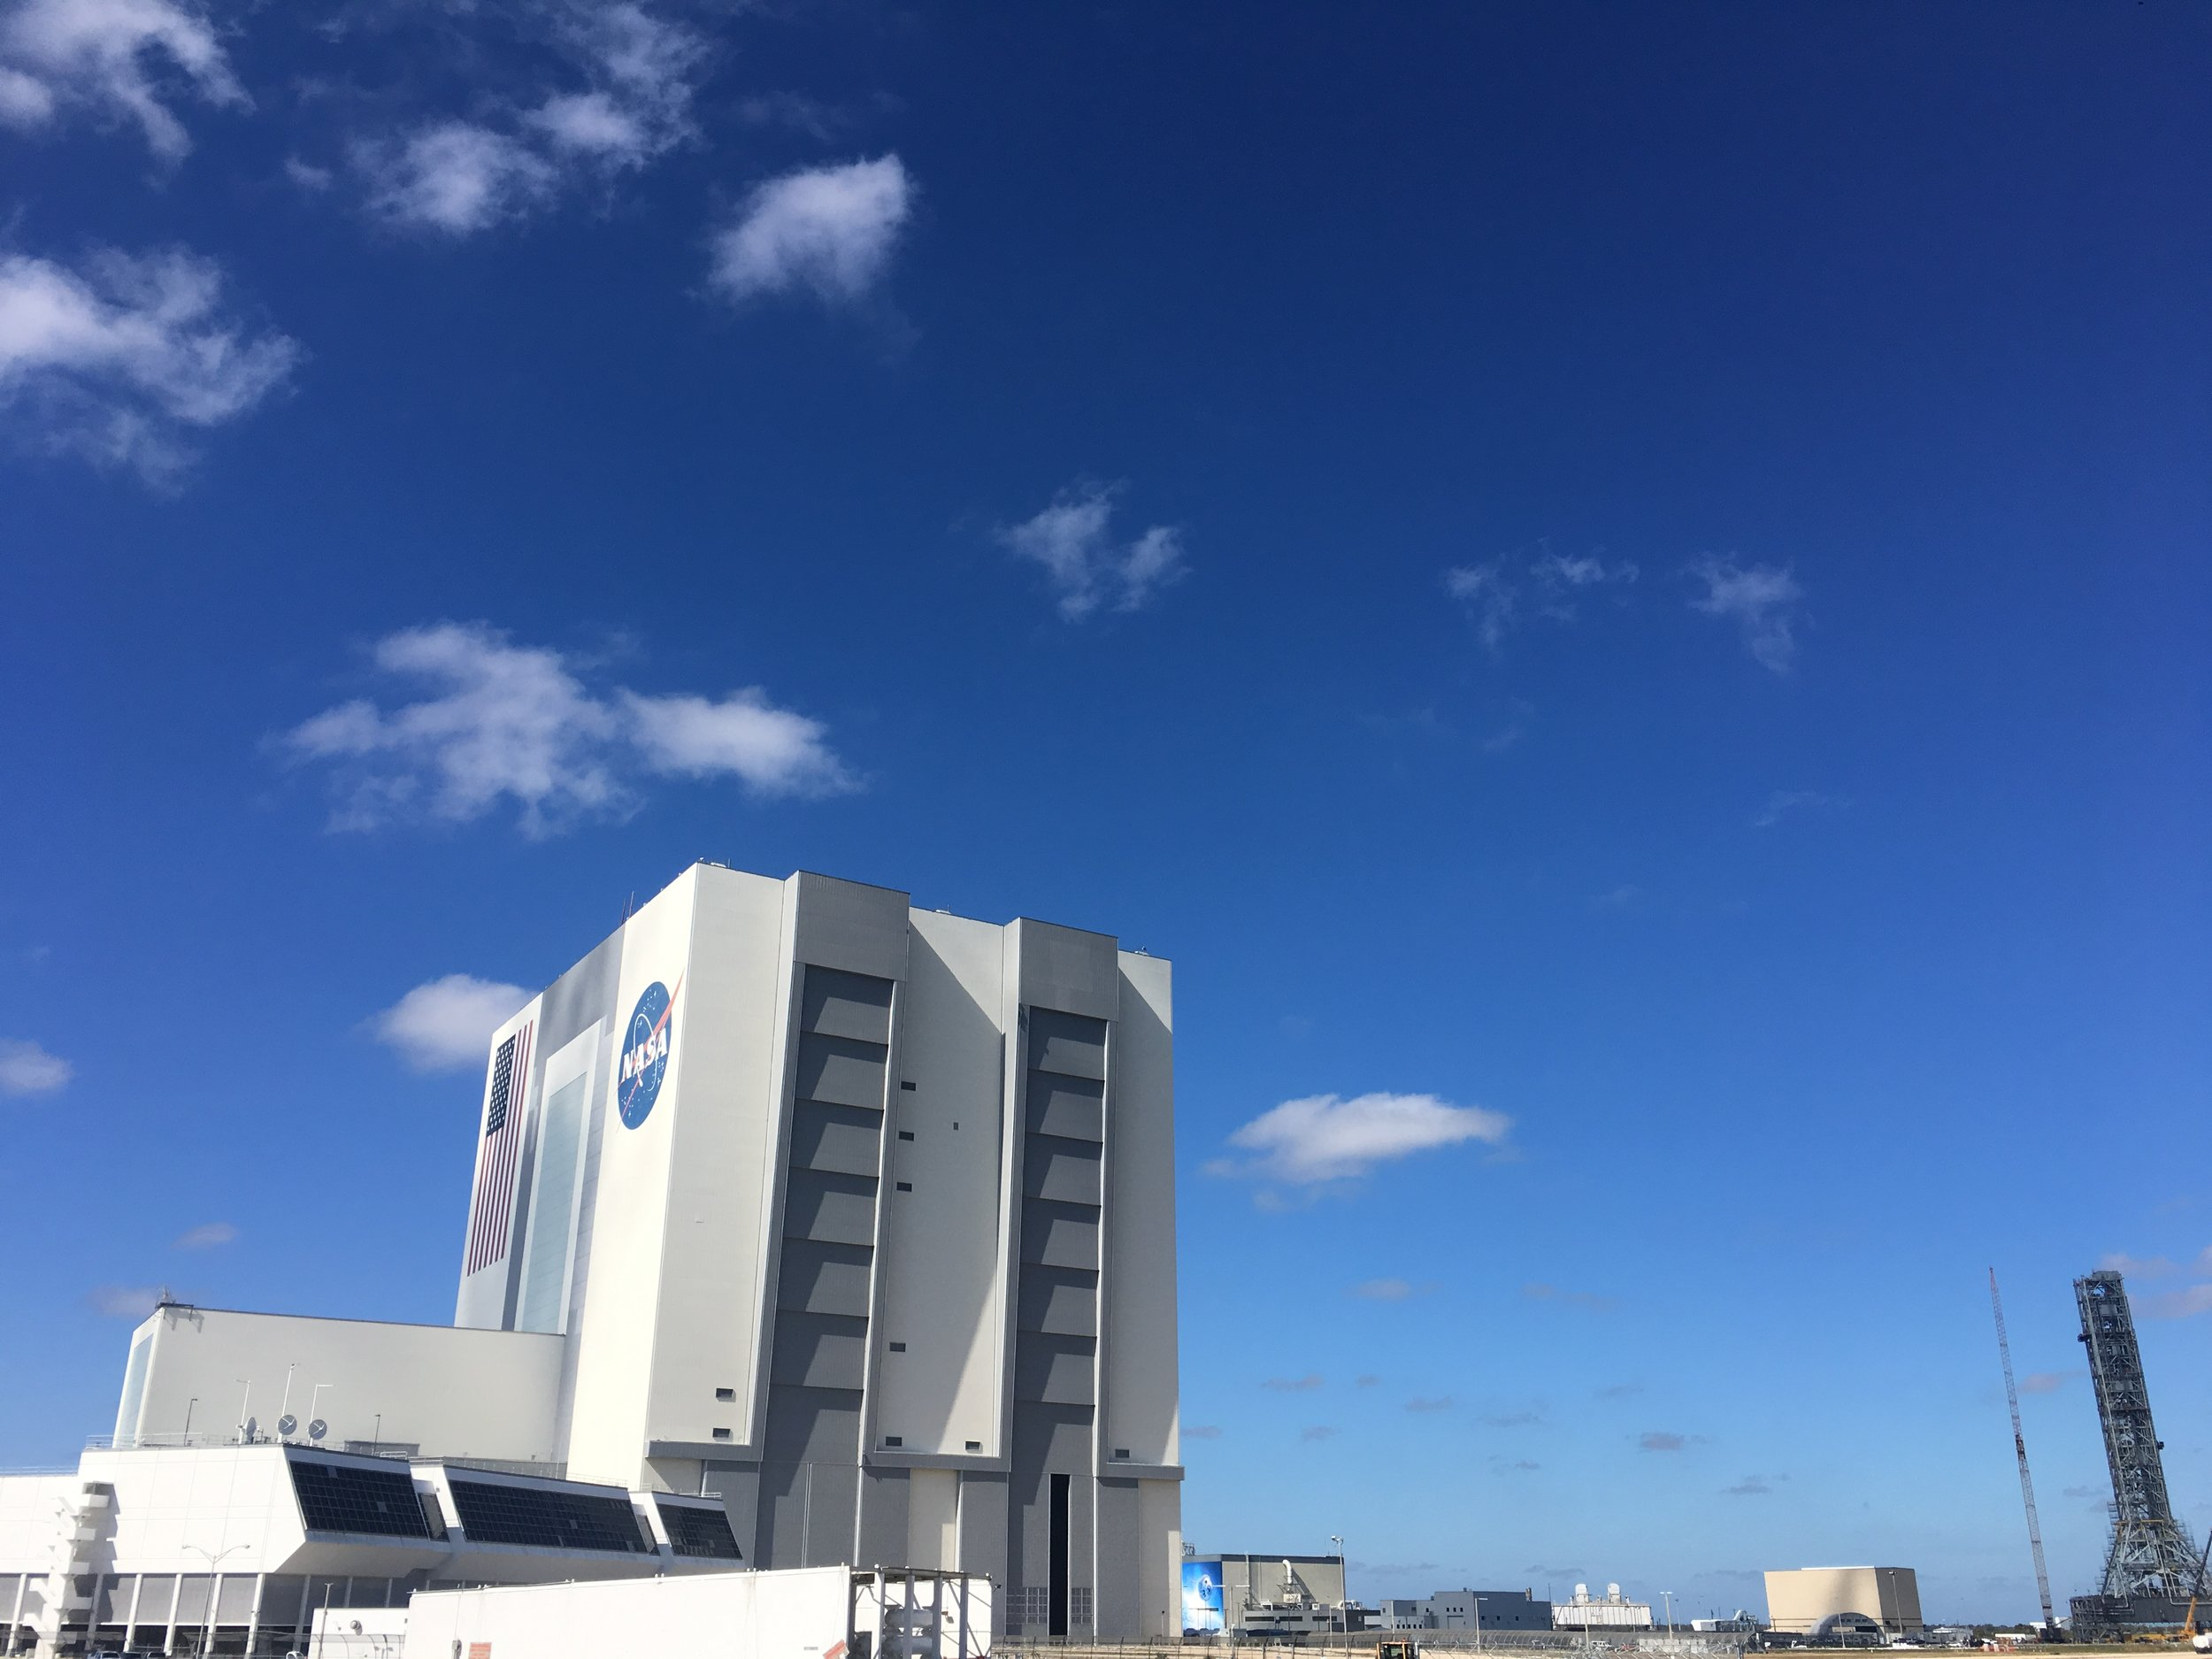 VAB, LCC, Starliner Facility, Shuttle MLP, and SLS Tower seen from the Turning Basin.